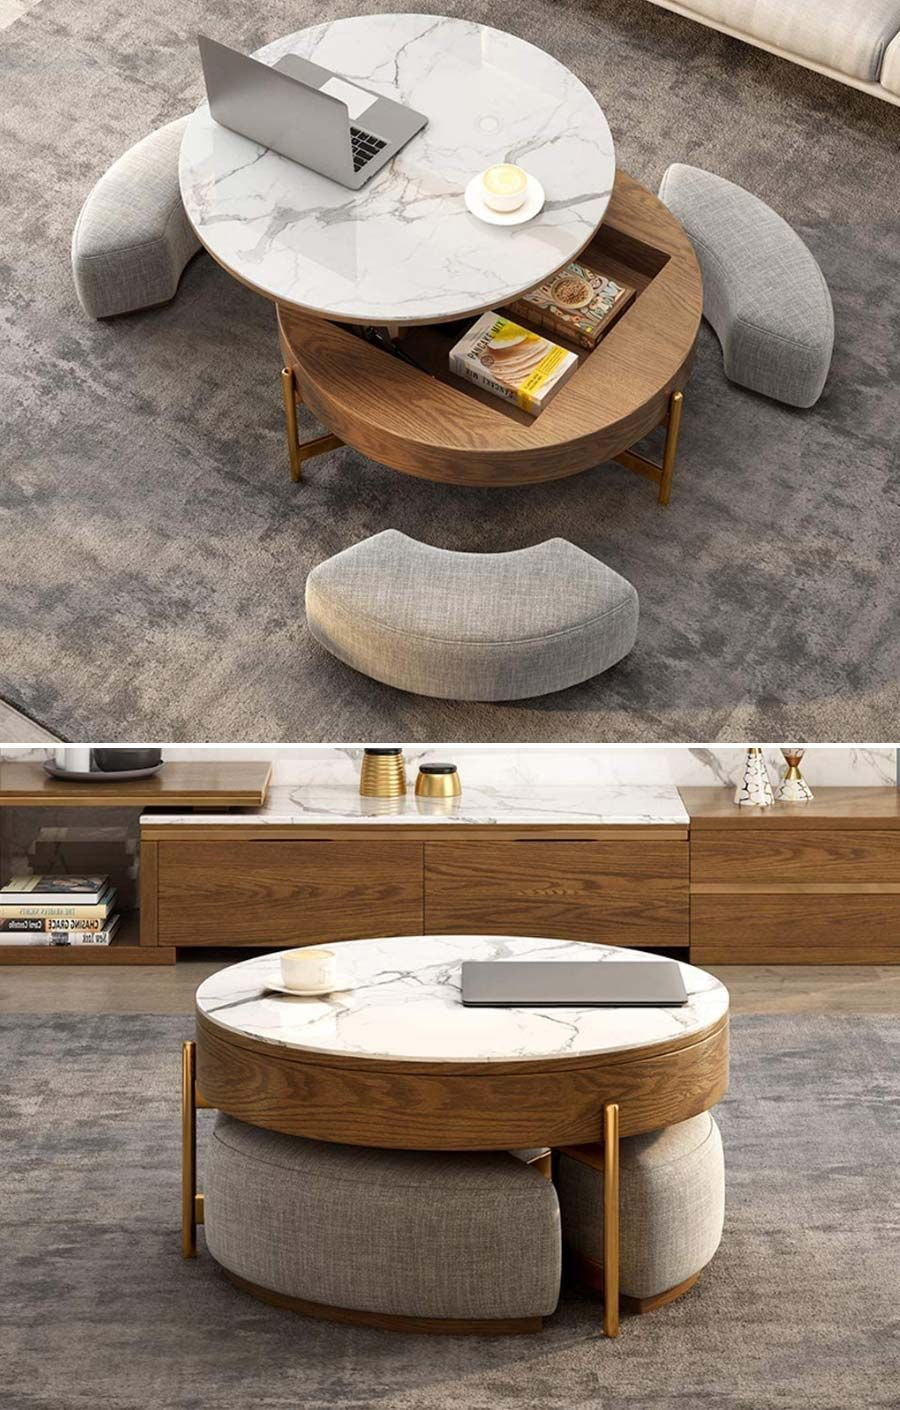 25 Space Saving Furniture Pieces You Can Actually Get Tiny Partments Coffee Table With Seating Coffee Table Coffee Table Small Space [ 1410 x 900 Pixel ]